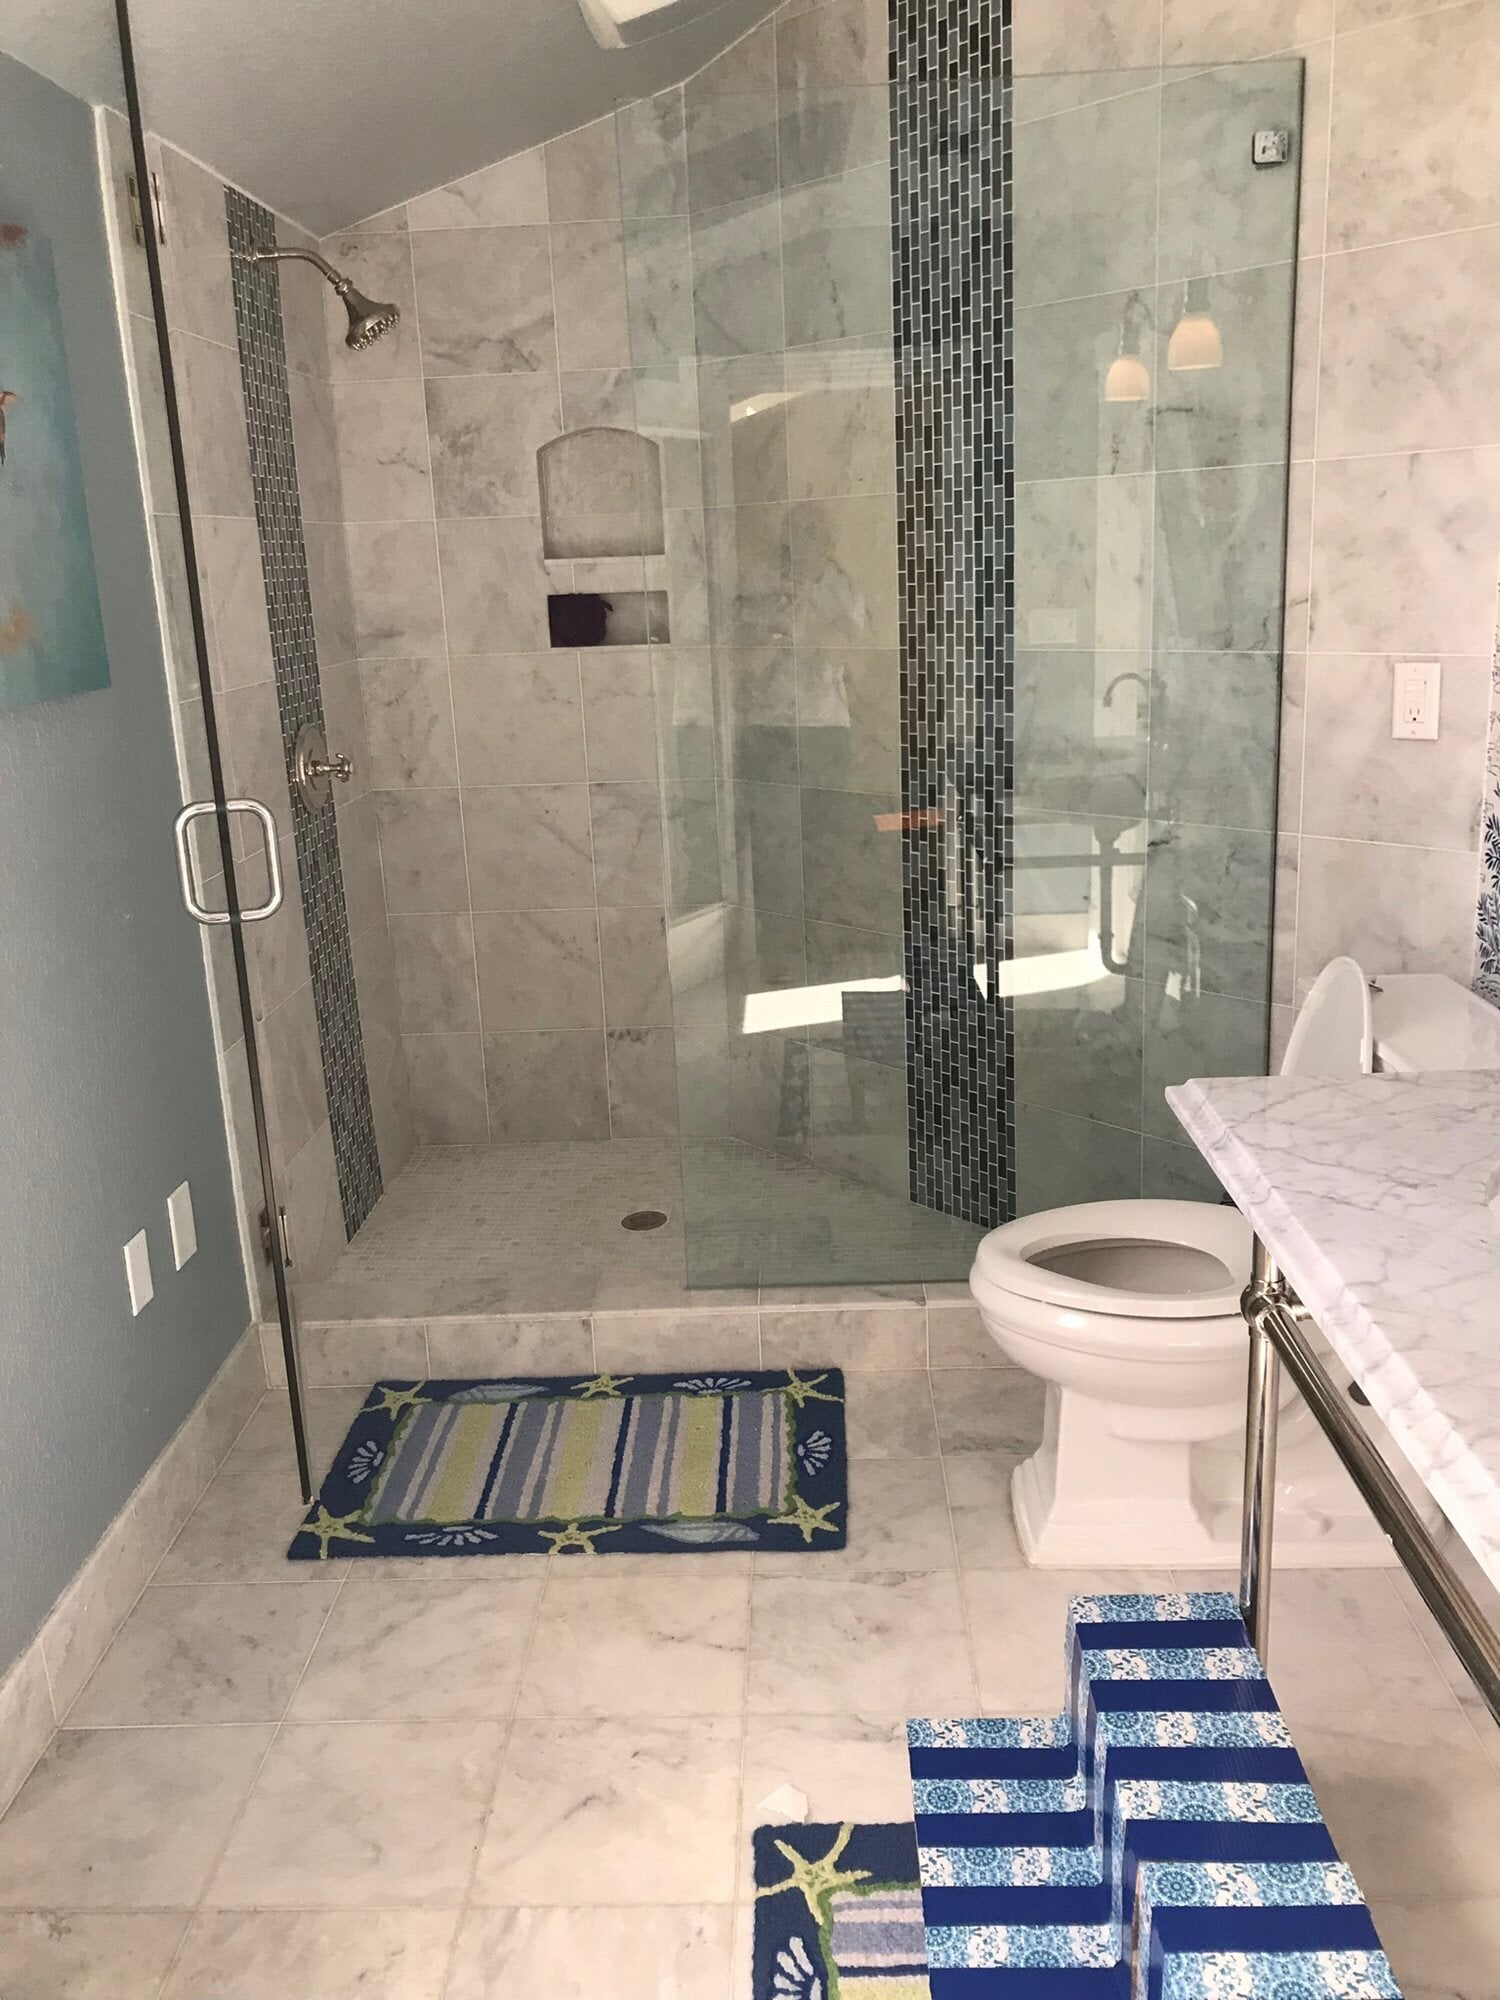 Childs bathroom design in Juno Beach, FL from Floors For You Kitchen & Bath